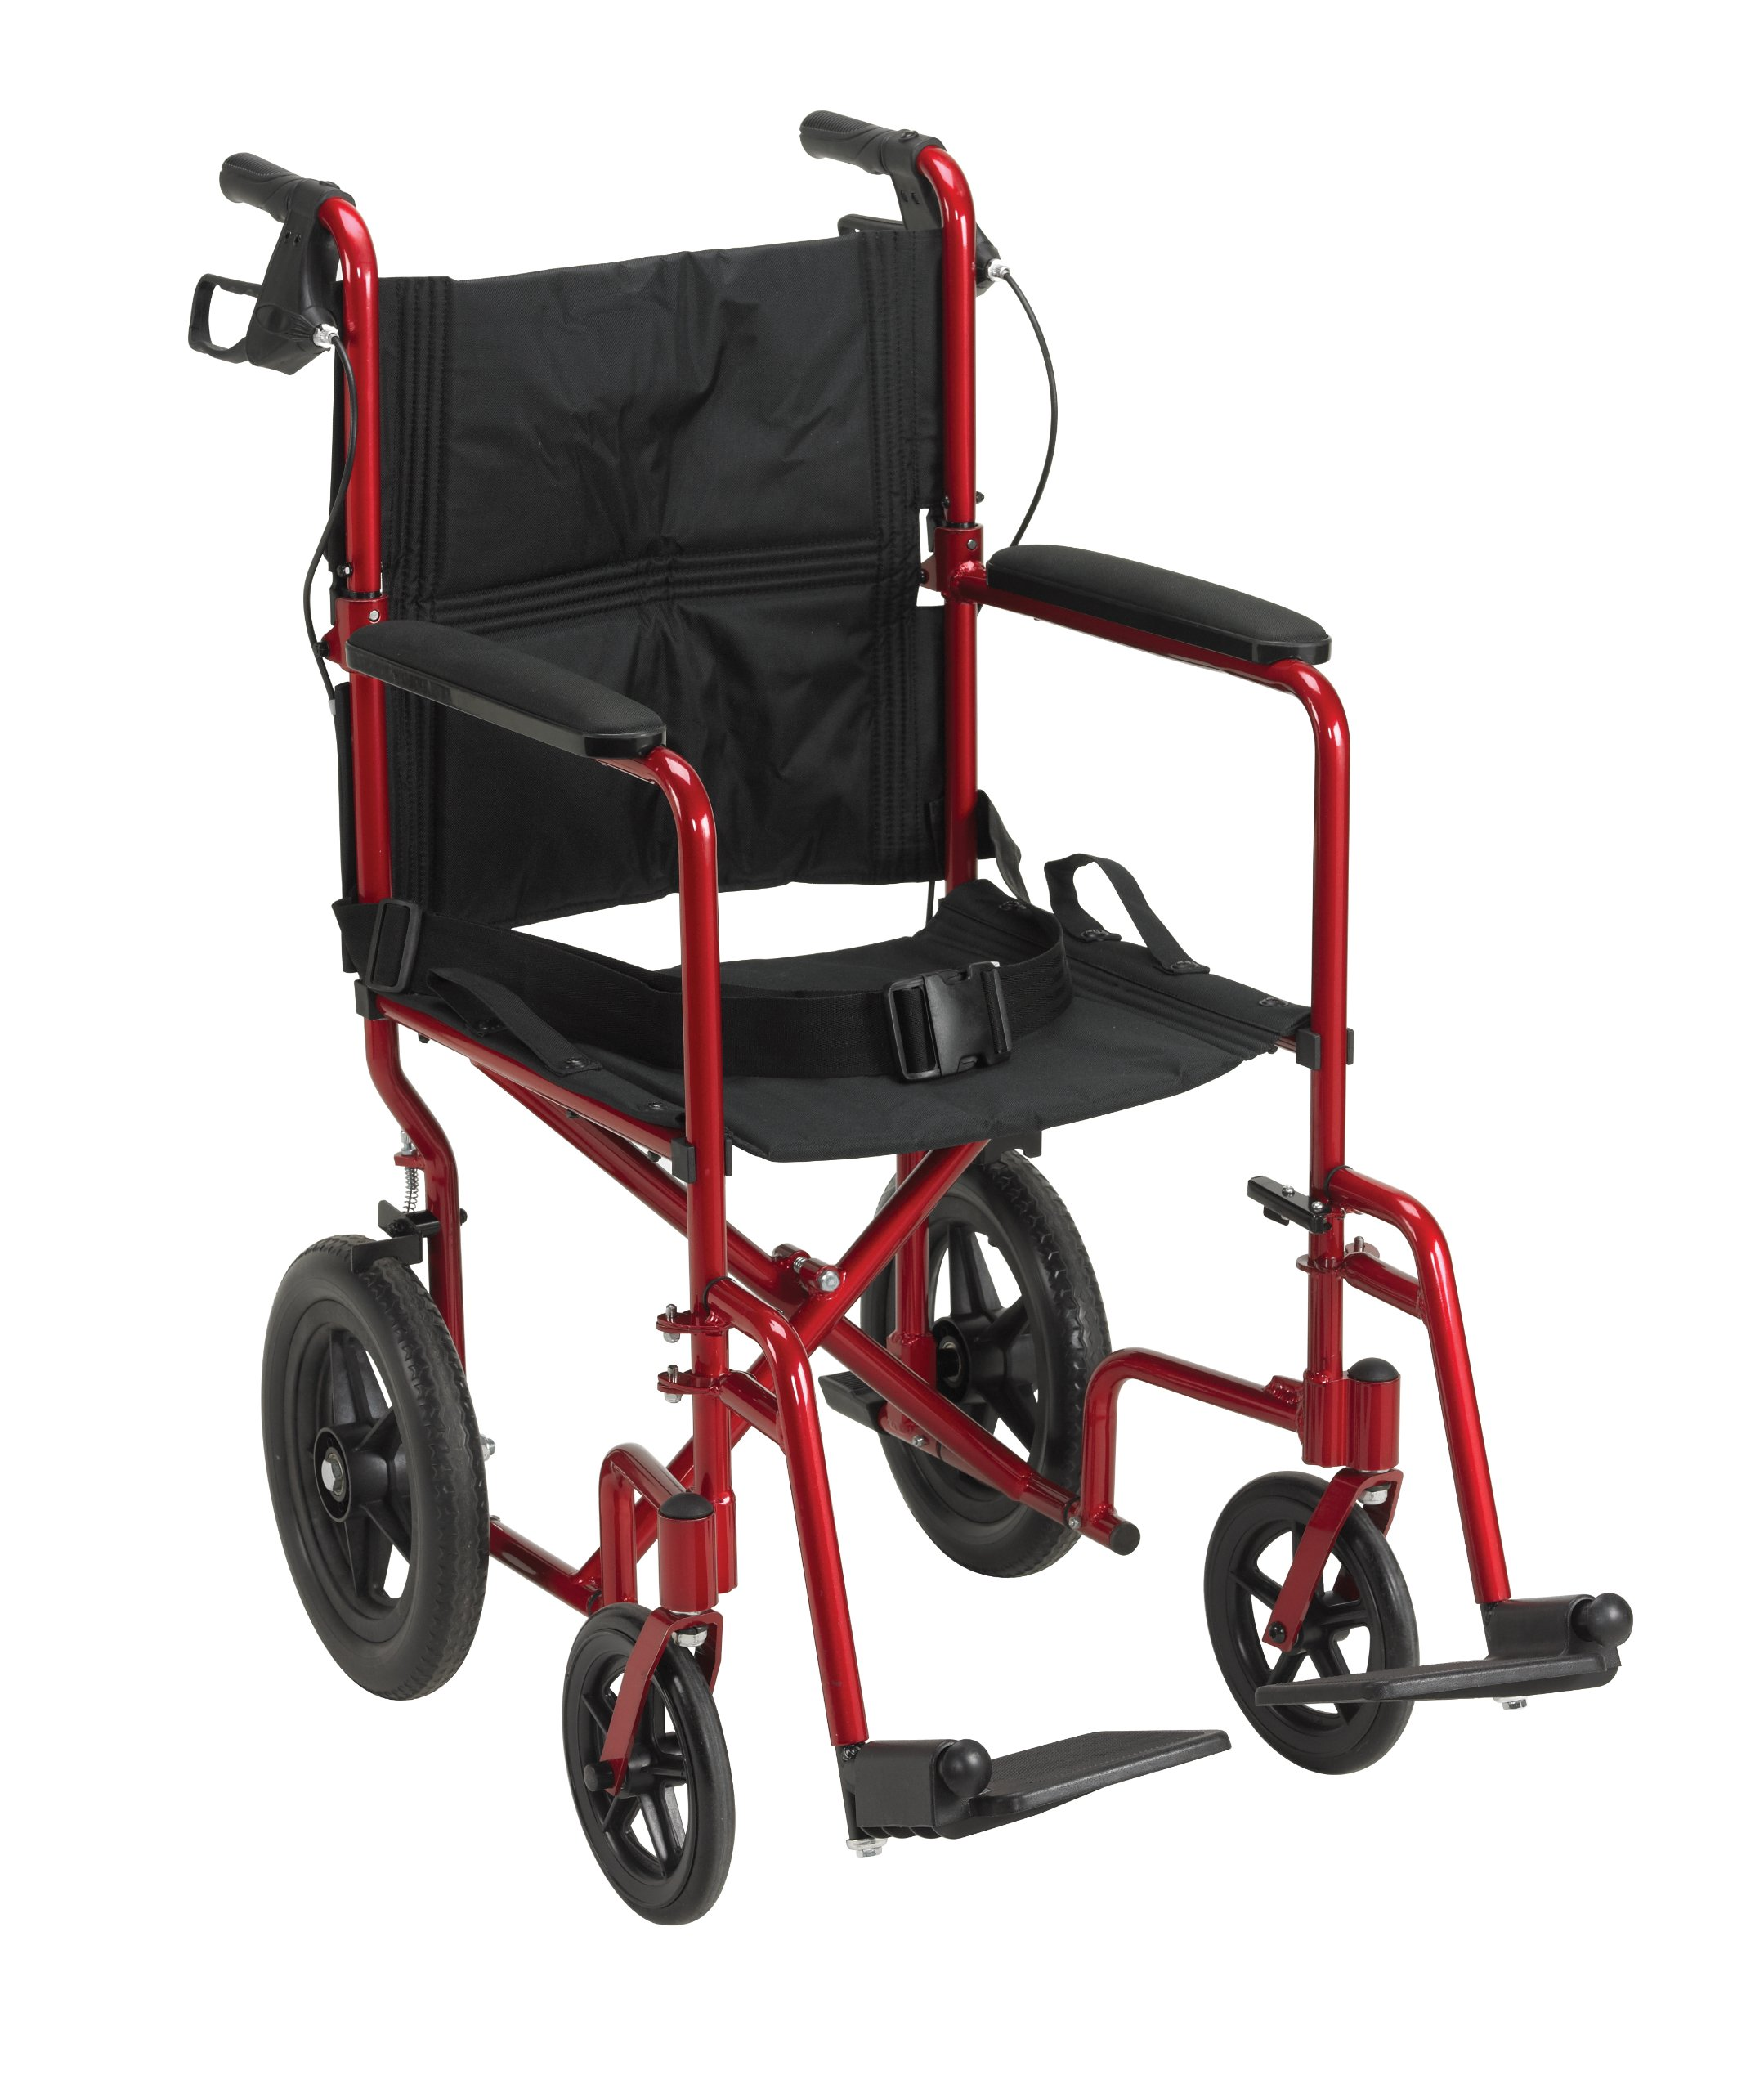 Drive Medical Lightweight Expedition Transport Wheelchair with Hand Brakes, Red by Drive Medical